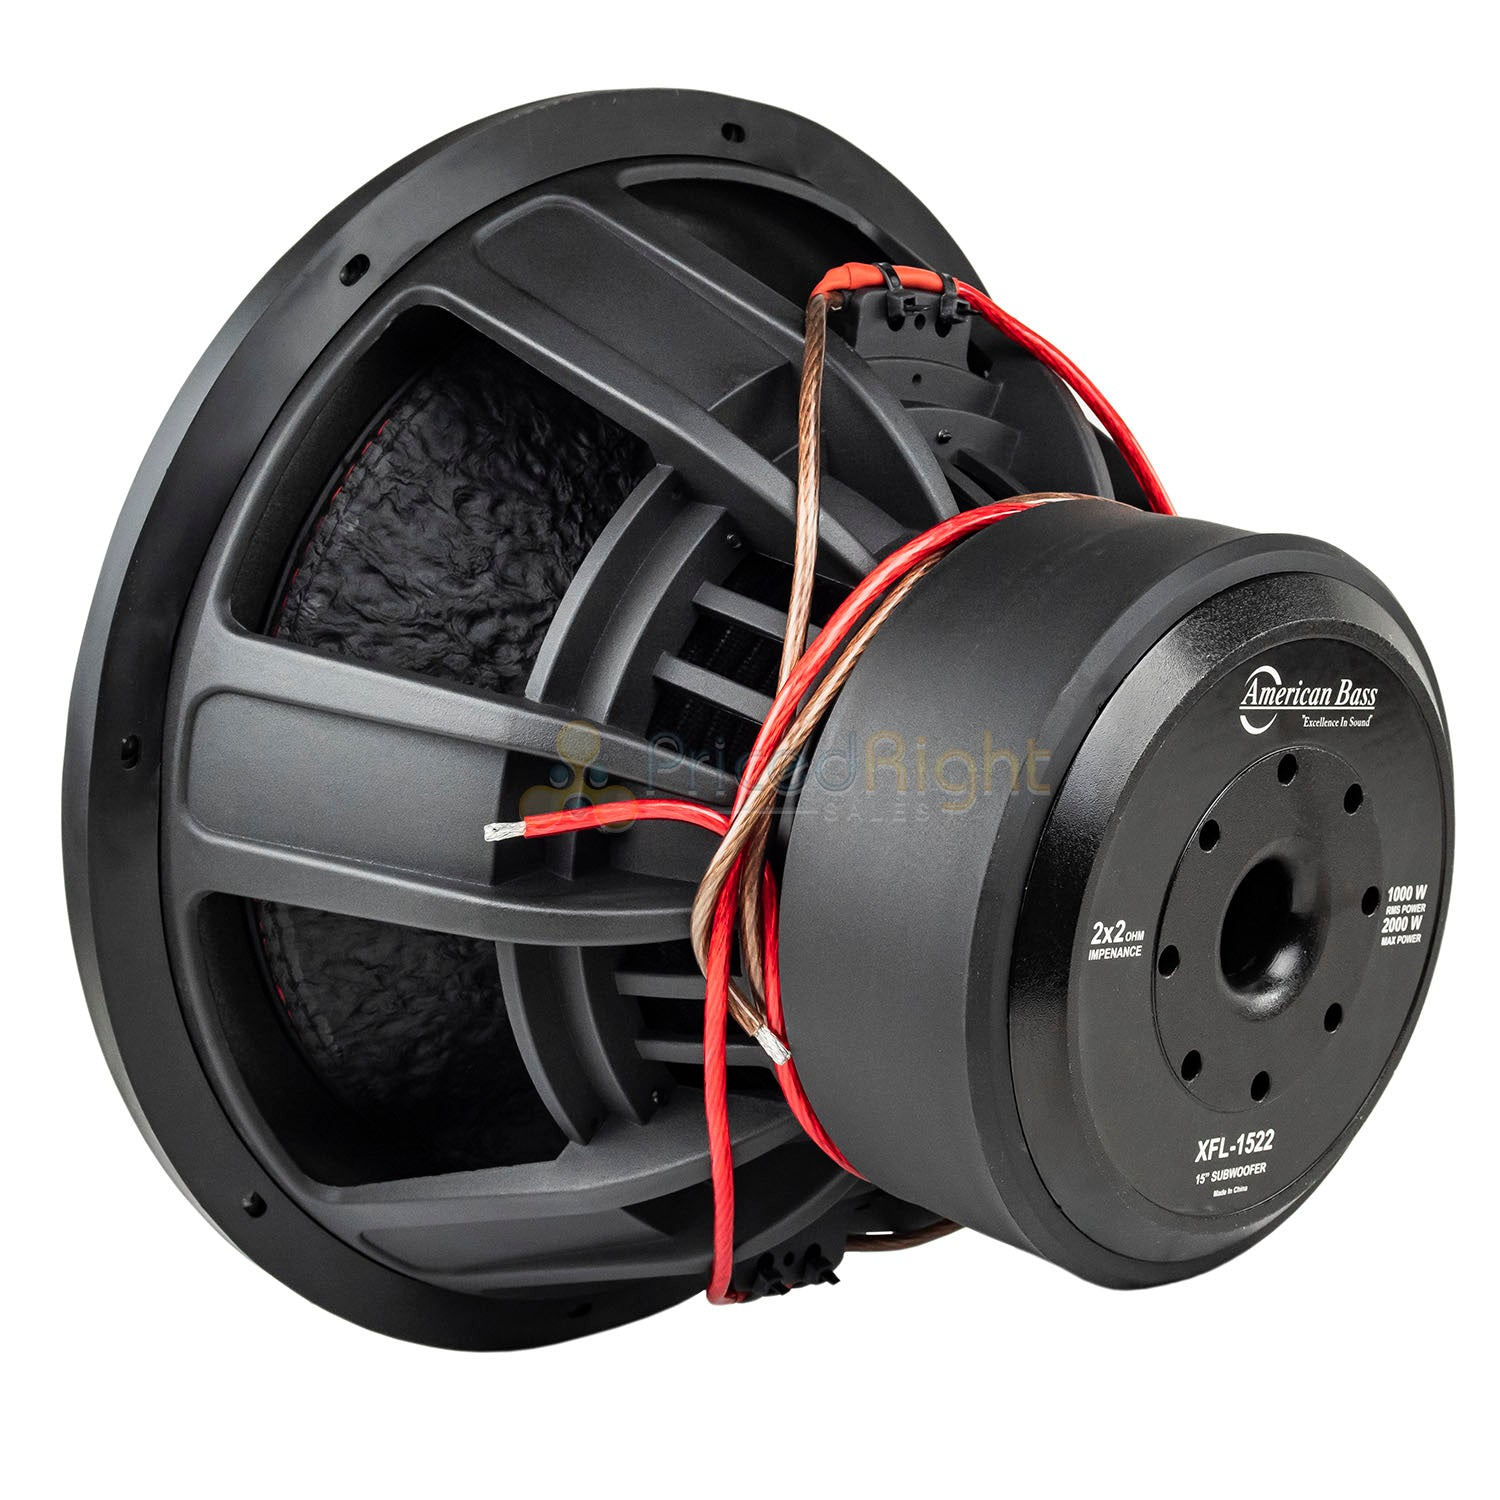 American Bass XD-1522 15 Subwoofers Dual 2 Ohm 2000 Watts Max Car Audio 2 Pack